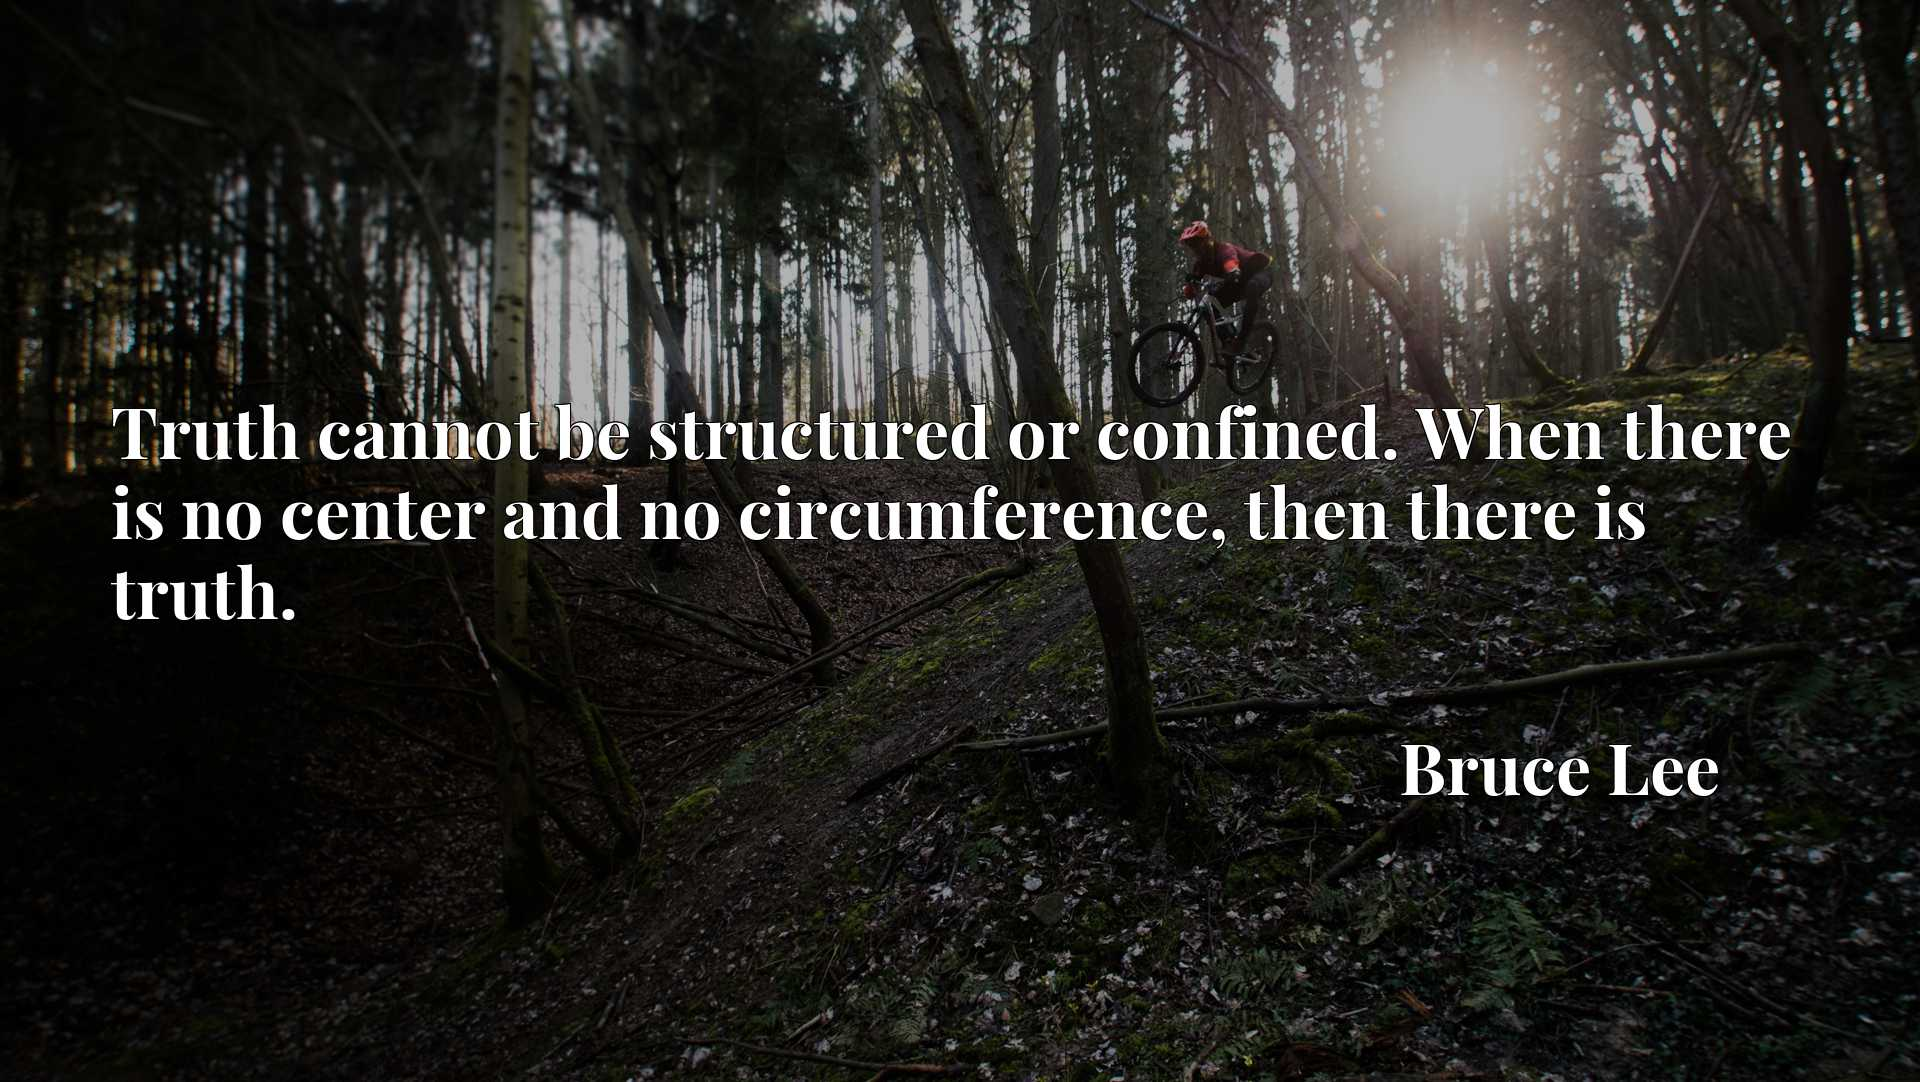 Truth cannot be structured or confined. When there is no center and no circumference, then there is truth.